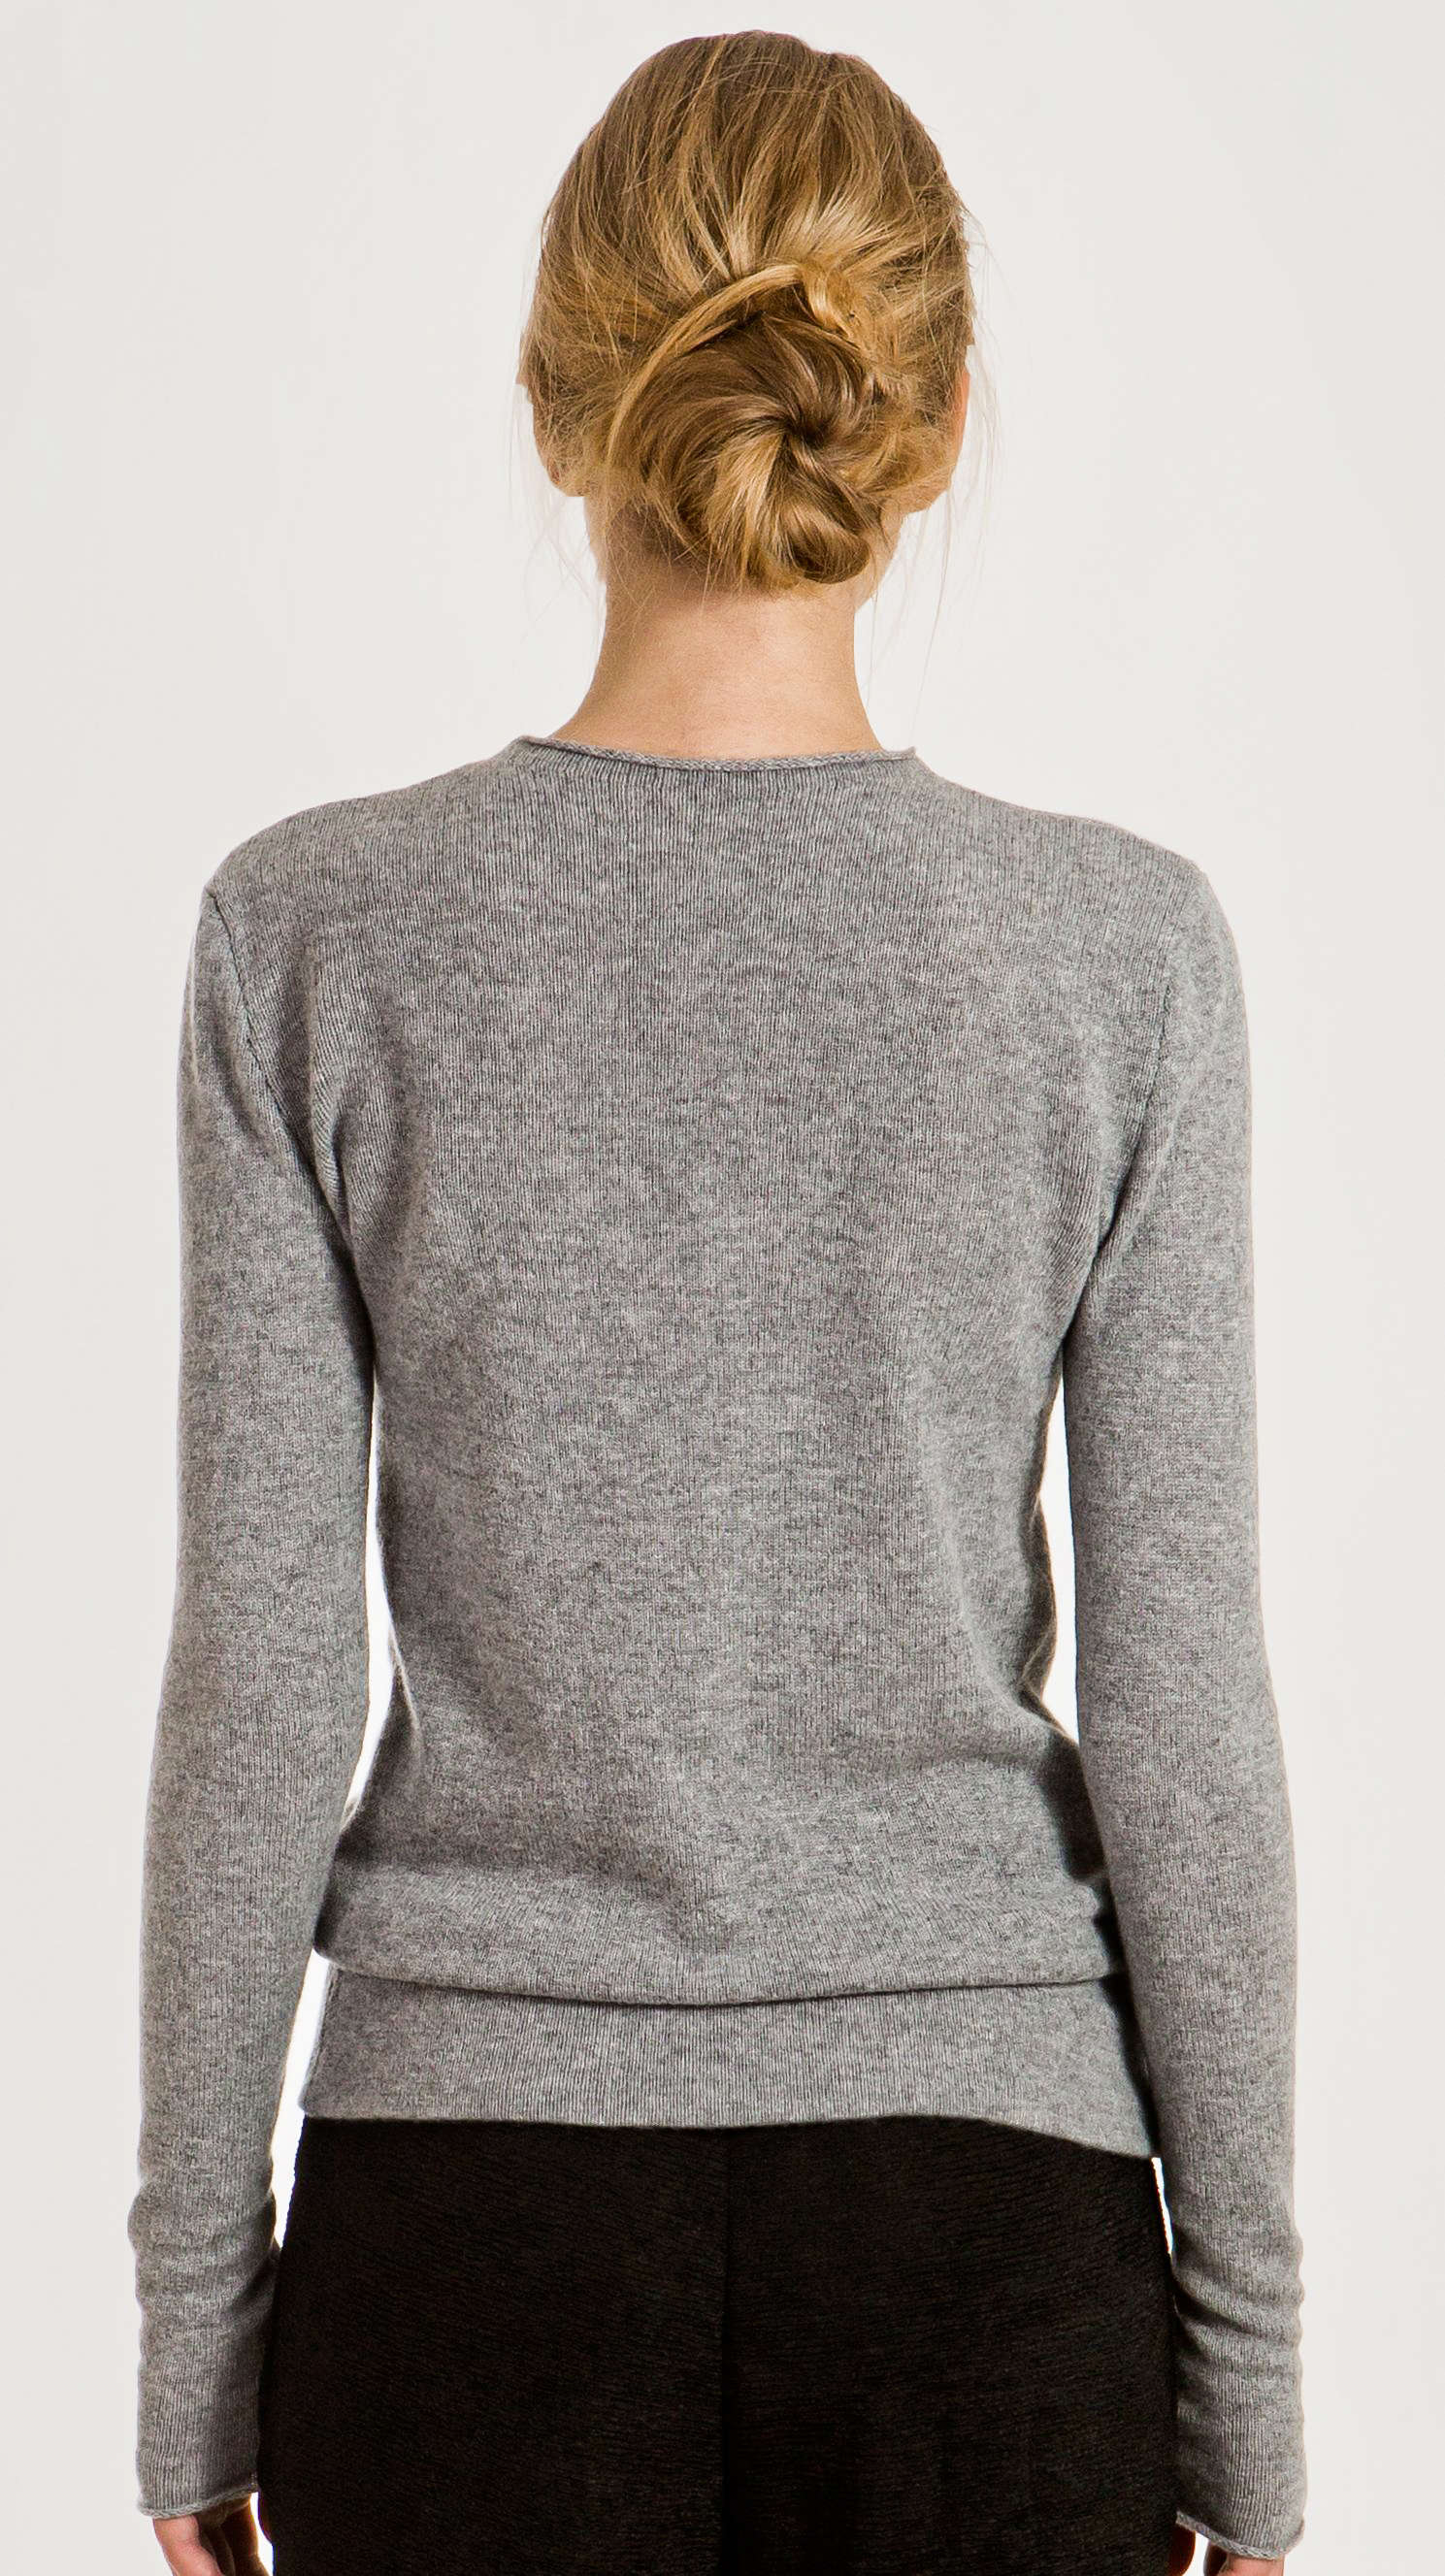 Buy Diesel Grey K-Must Distressed Crewneck Sweater on hereufilbk.gq and get free shipping & returns in US. Long sleeve knit alpaca wool-blend sweater in grey. Distressing throughout. Rib knit crewneck collar, cuffs, and hem. Tonal stitching.